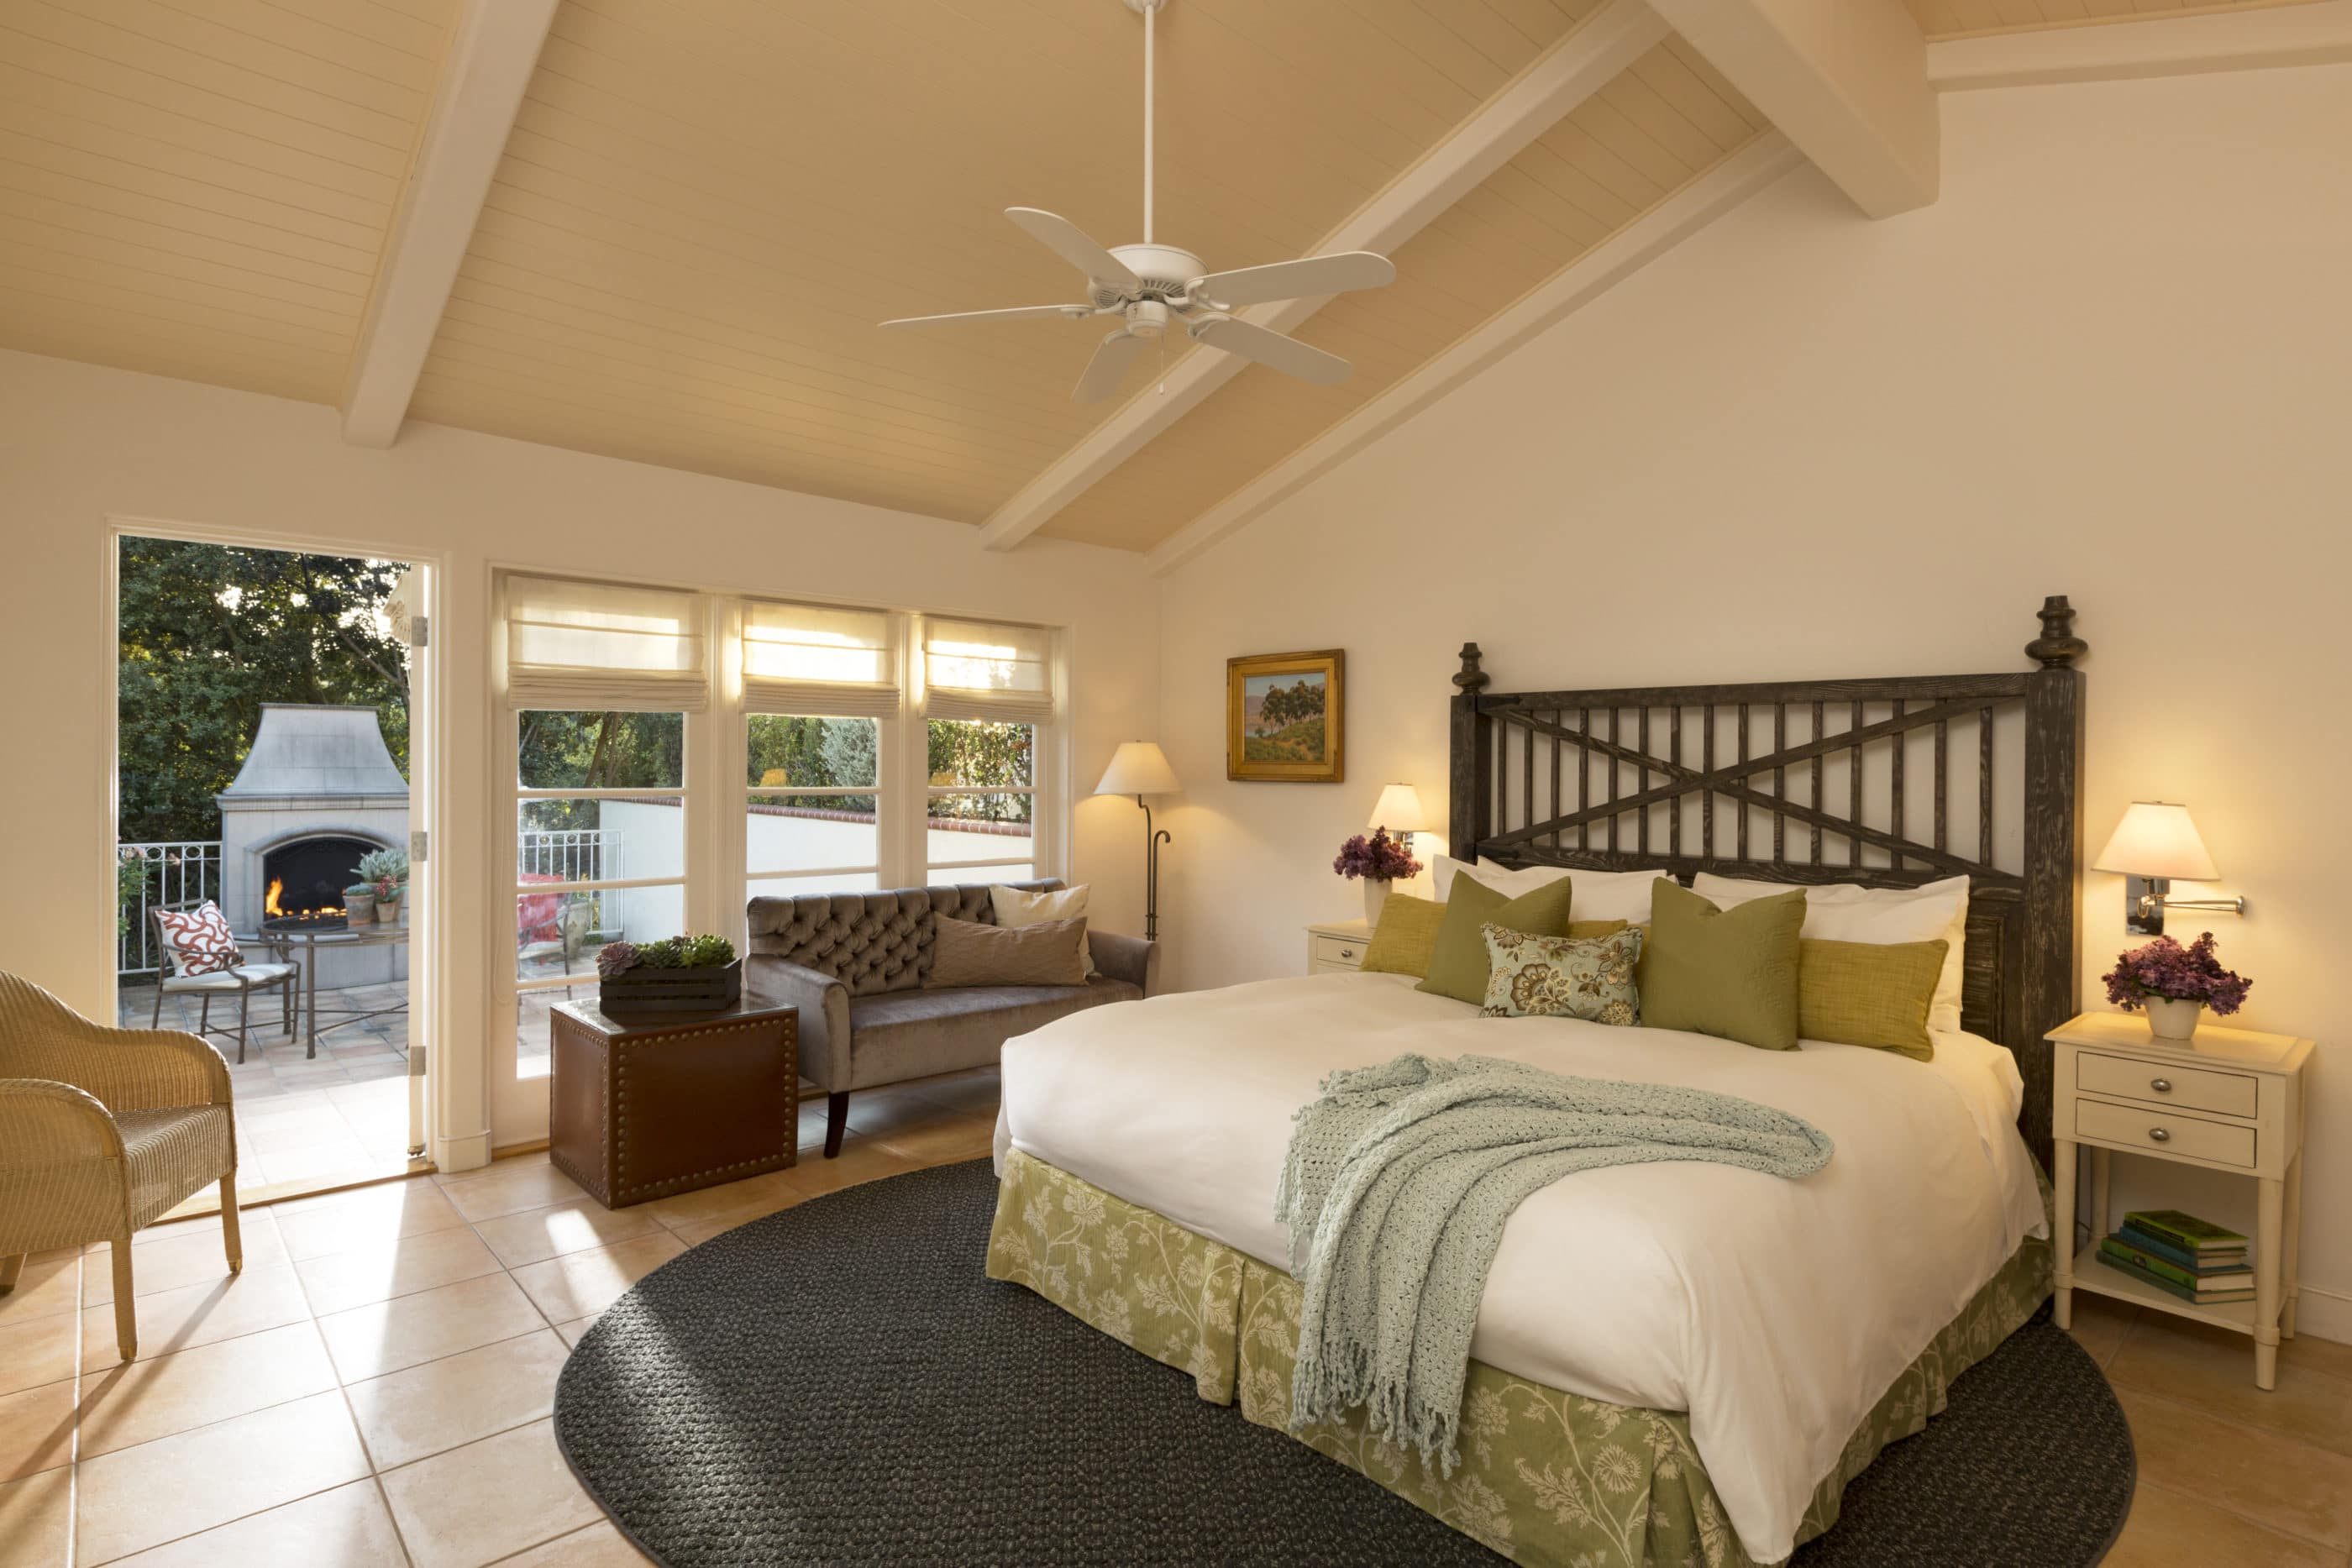 A gorgeous king room with an outdoor patio fireplace at The Inn at Rancho Santa Fe